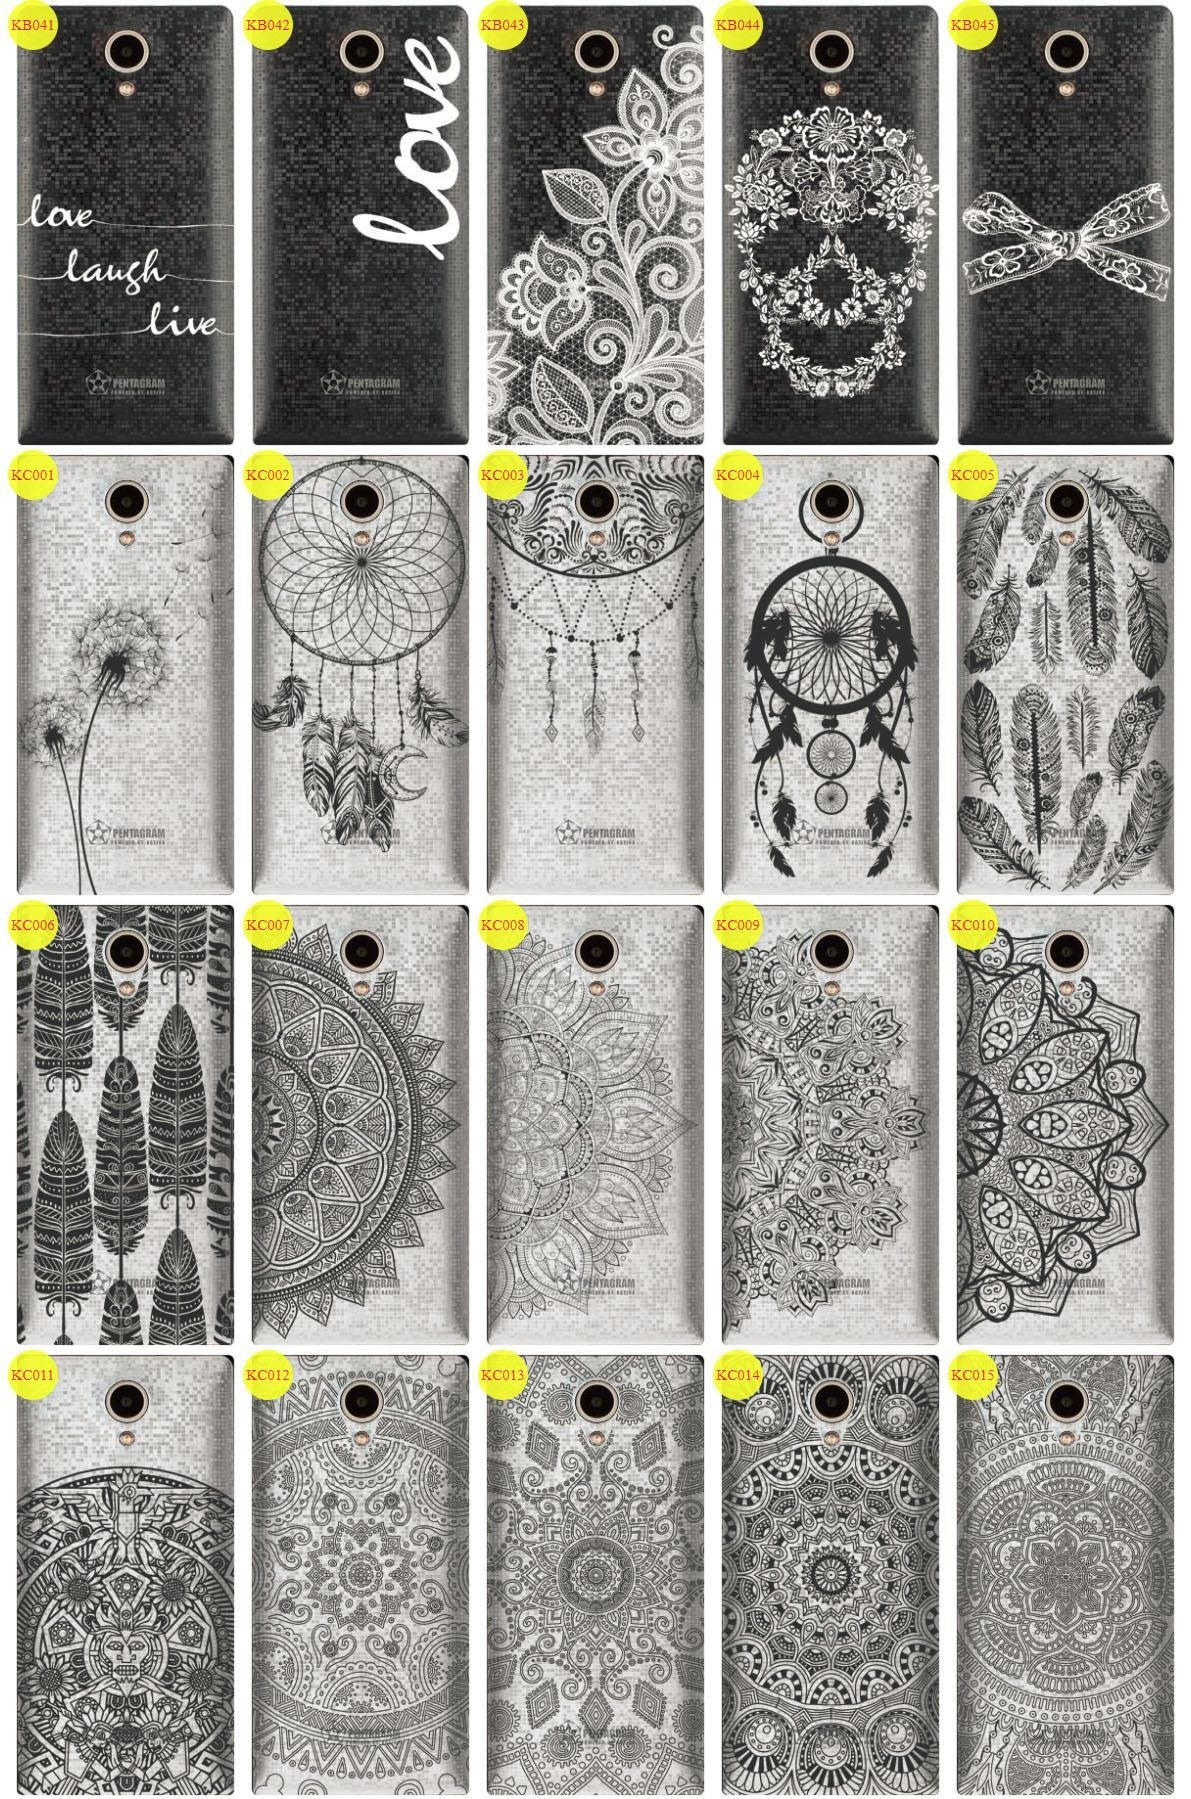 Case Cover Overprint Kreatui LaceCase PENTAGRAM REBEL 4.7 P470-1